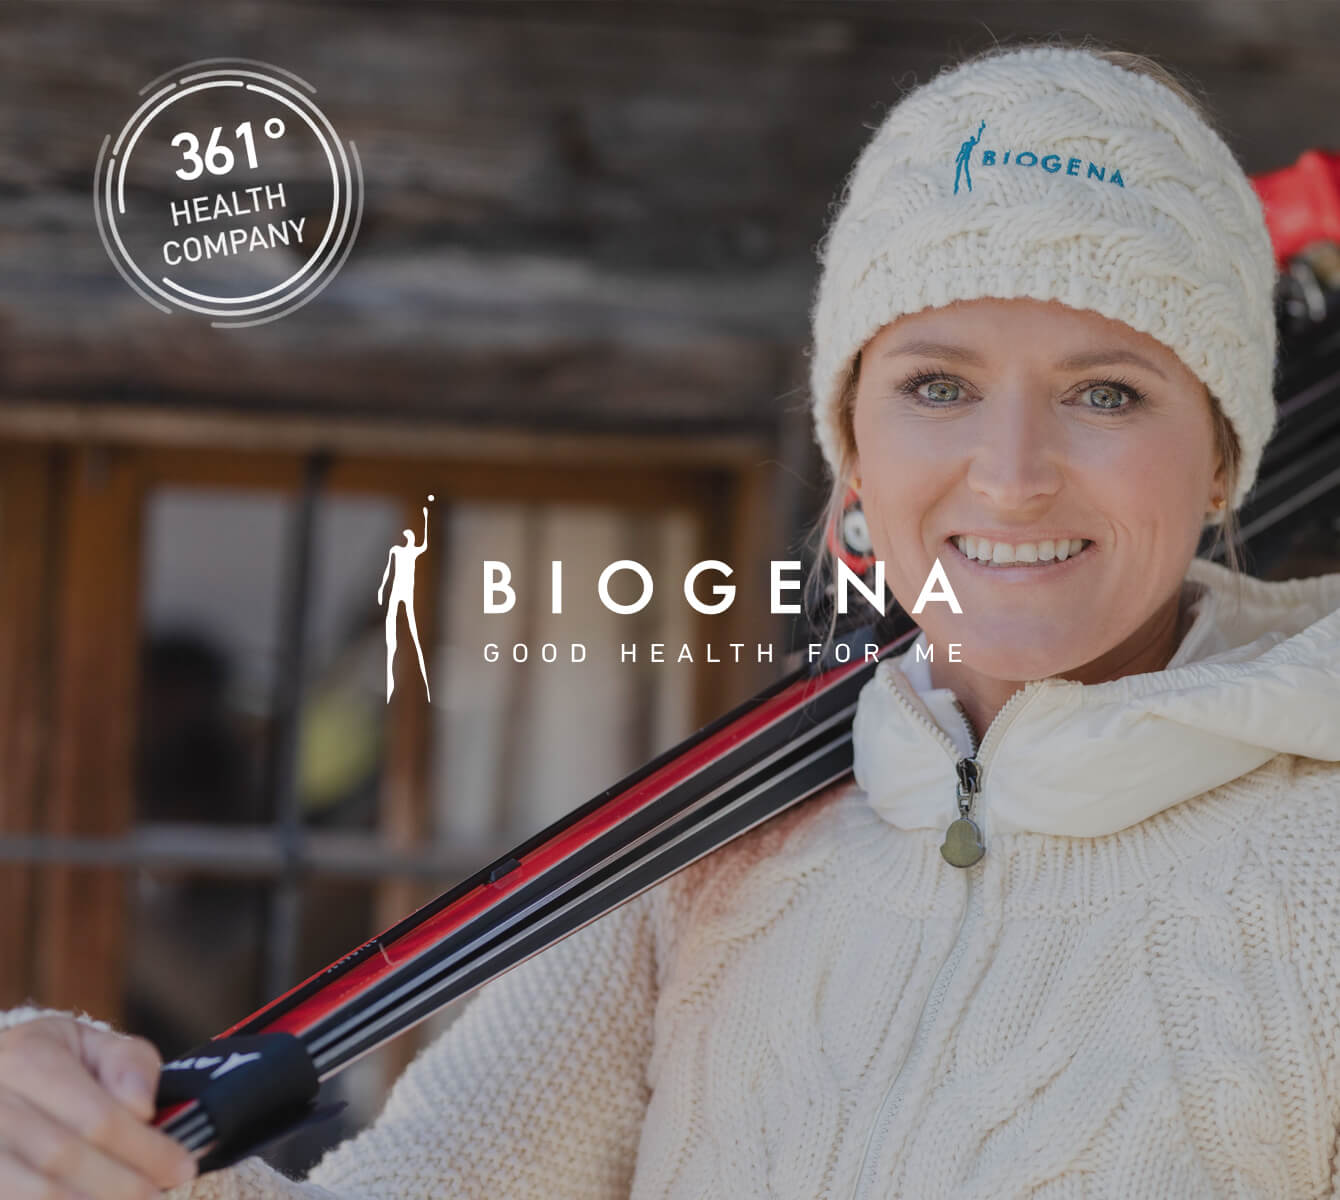 BIOGENA – Good Heath For Me